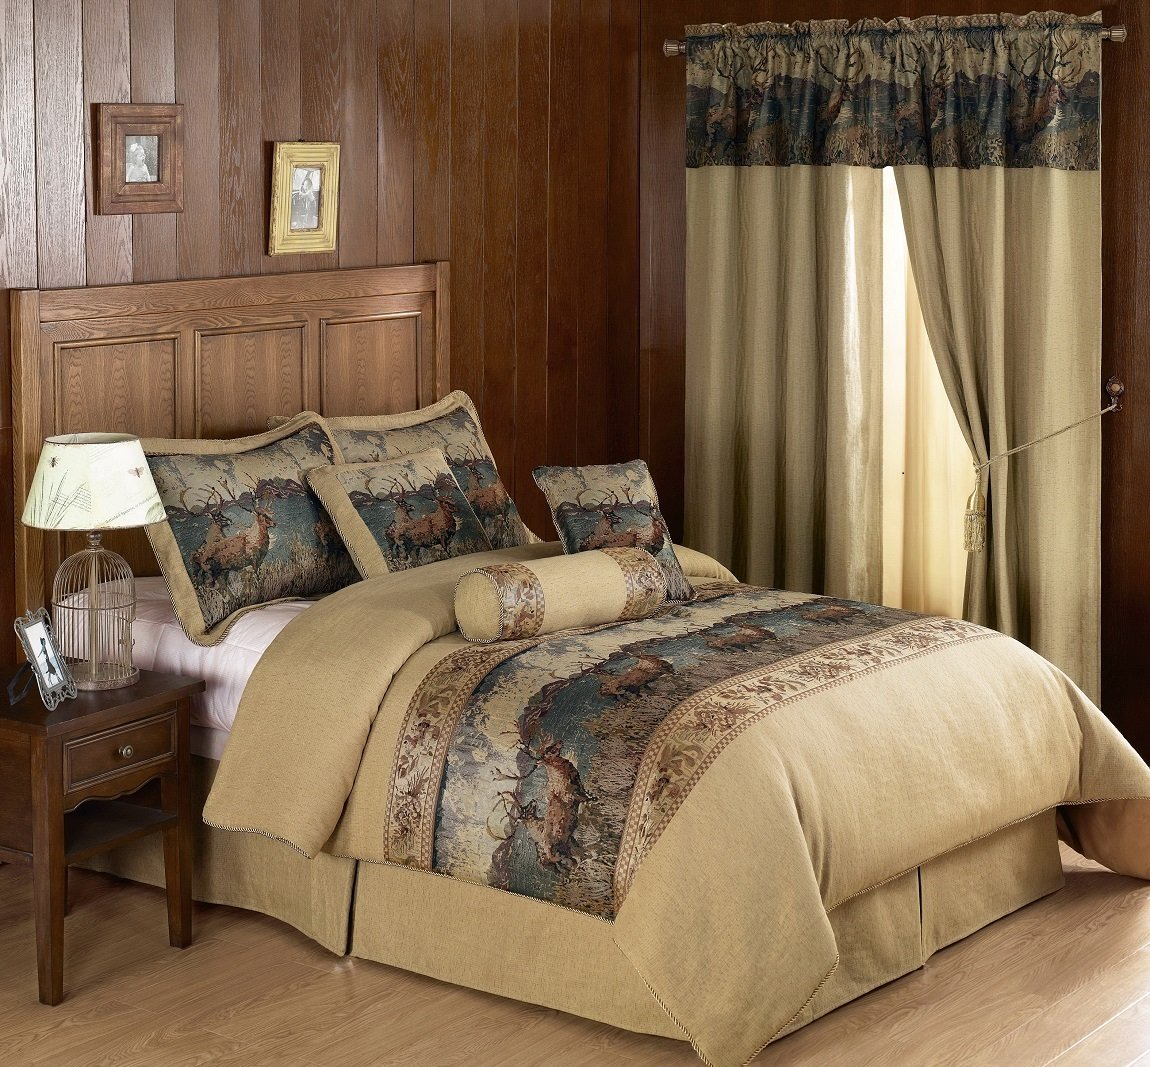 Queen Comforter Sets 28 Images Comforter Sets Piece Queen Brookfield Embroidered Comforter